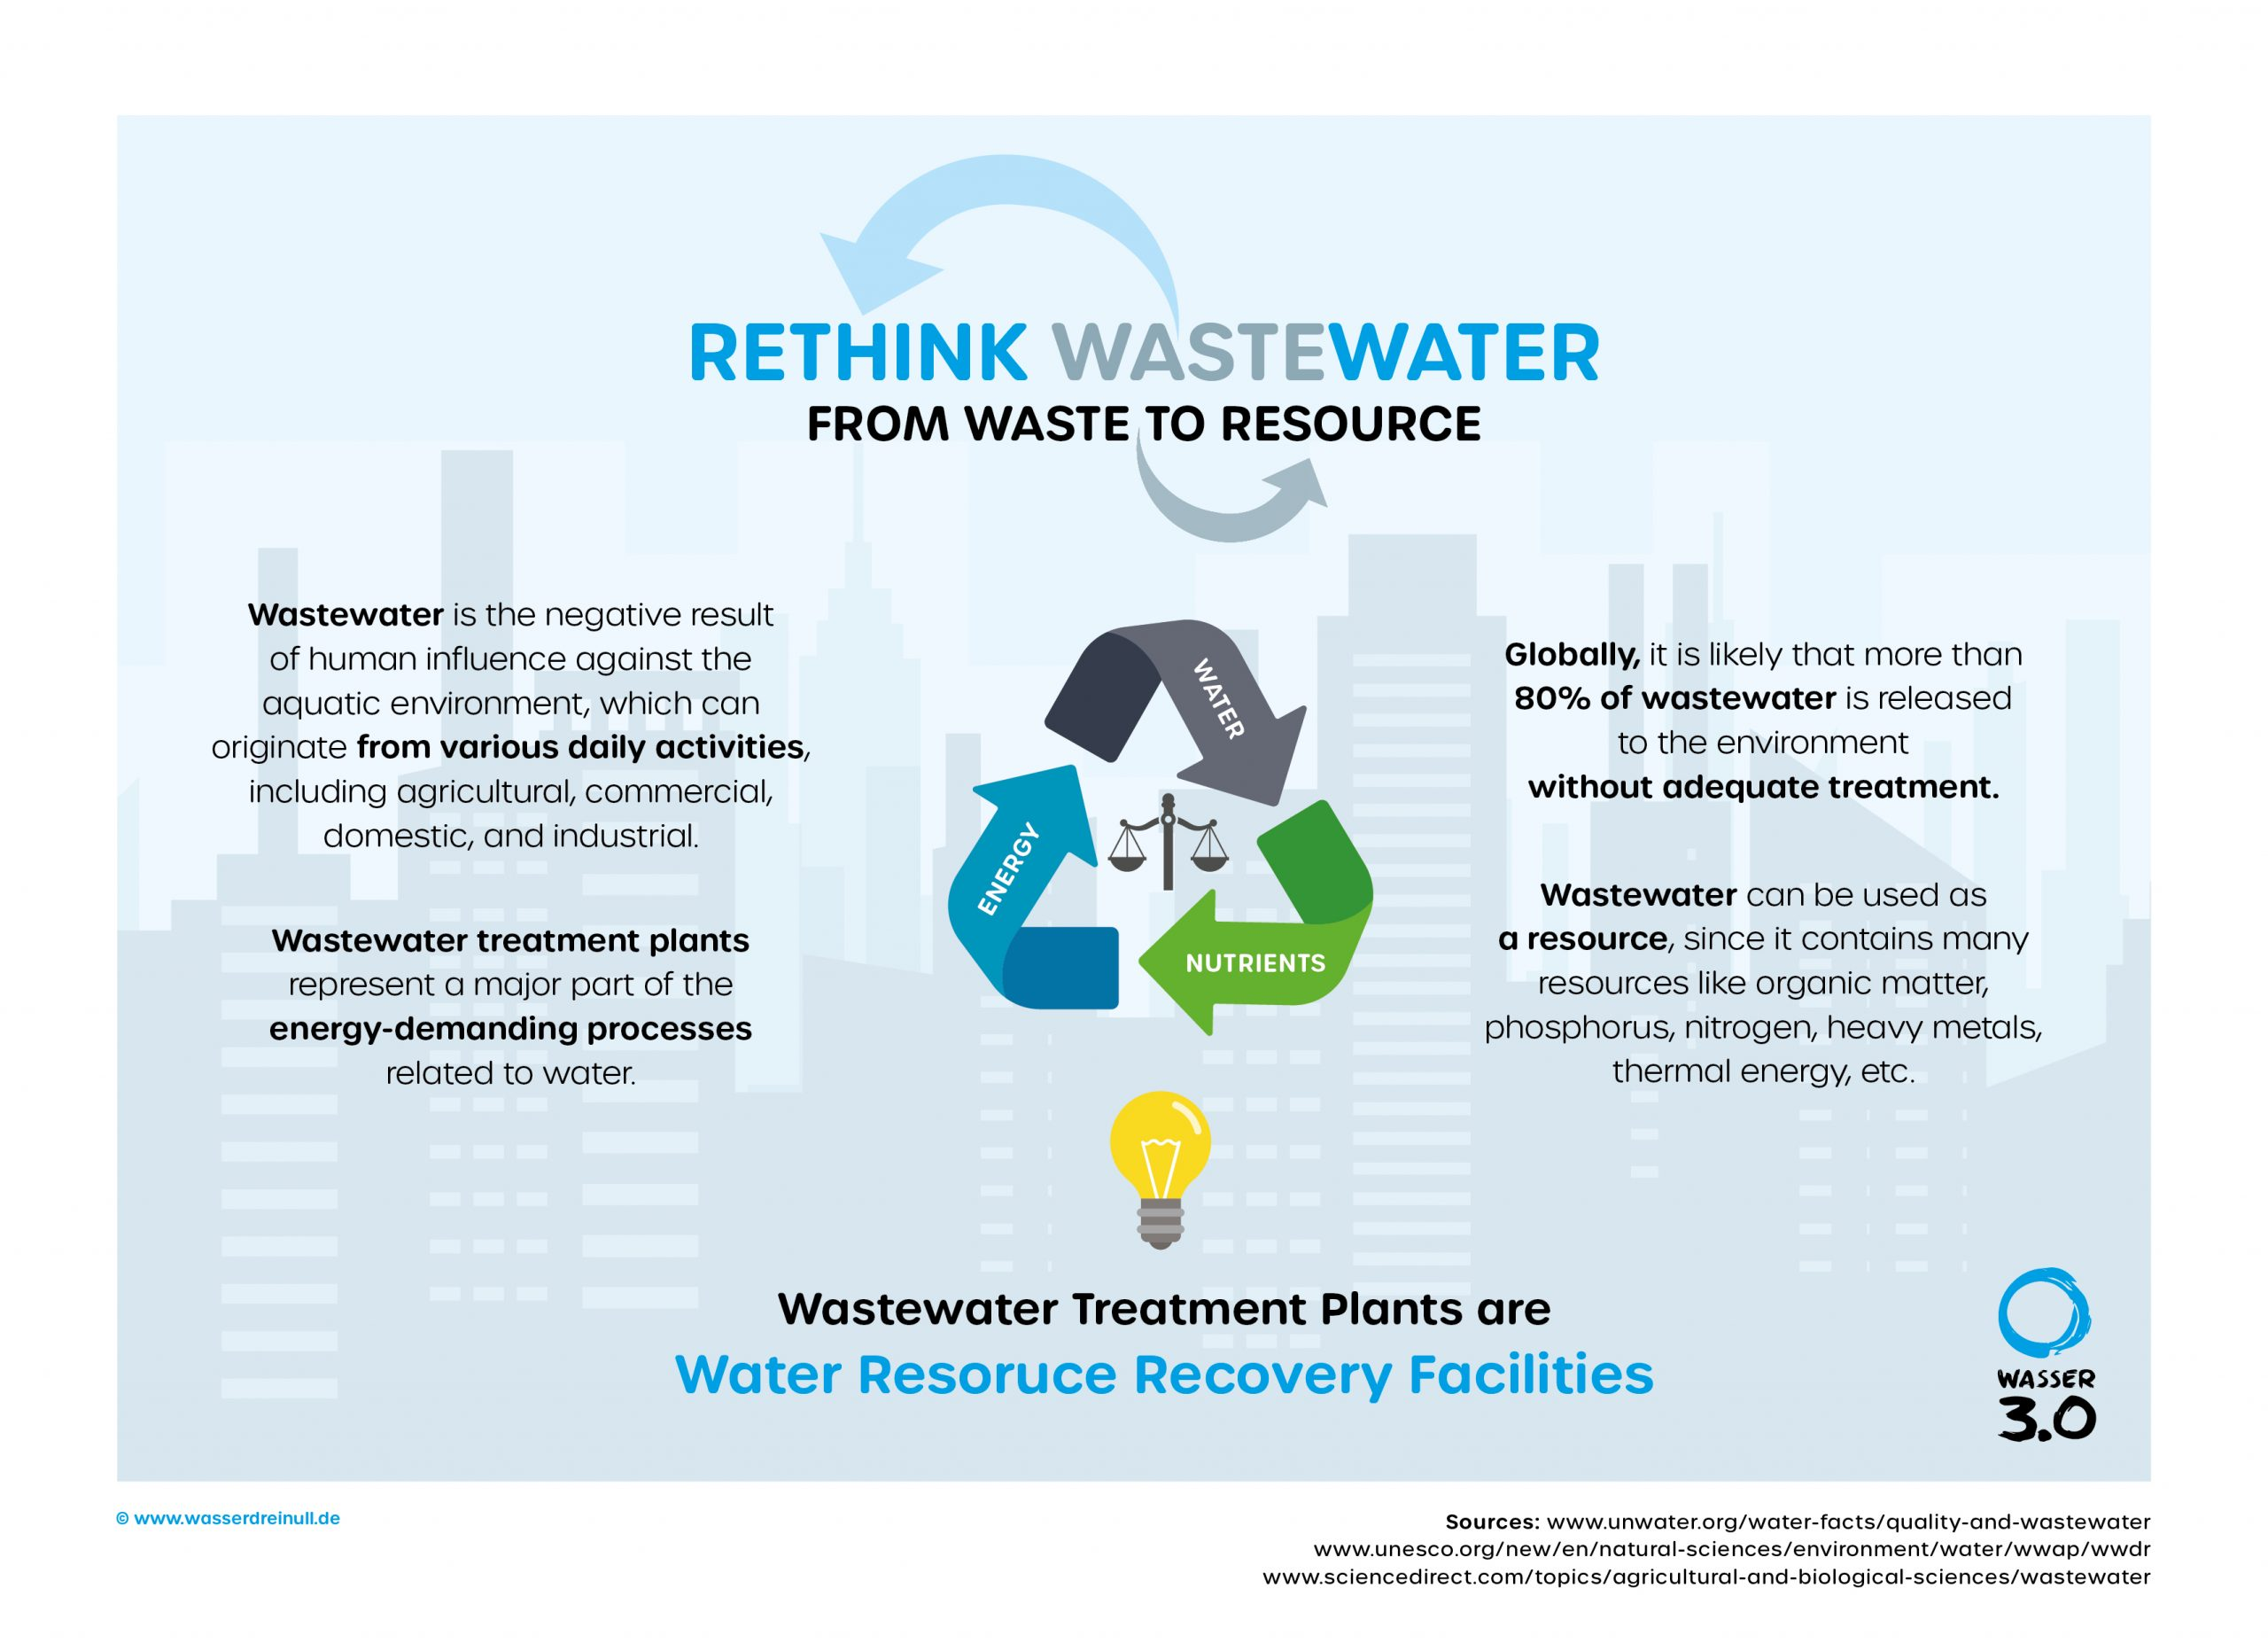 Wastewater as a resource